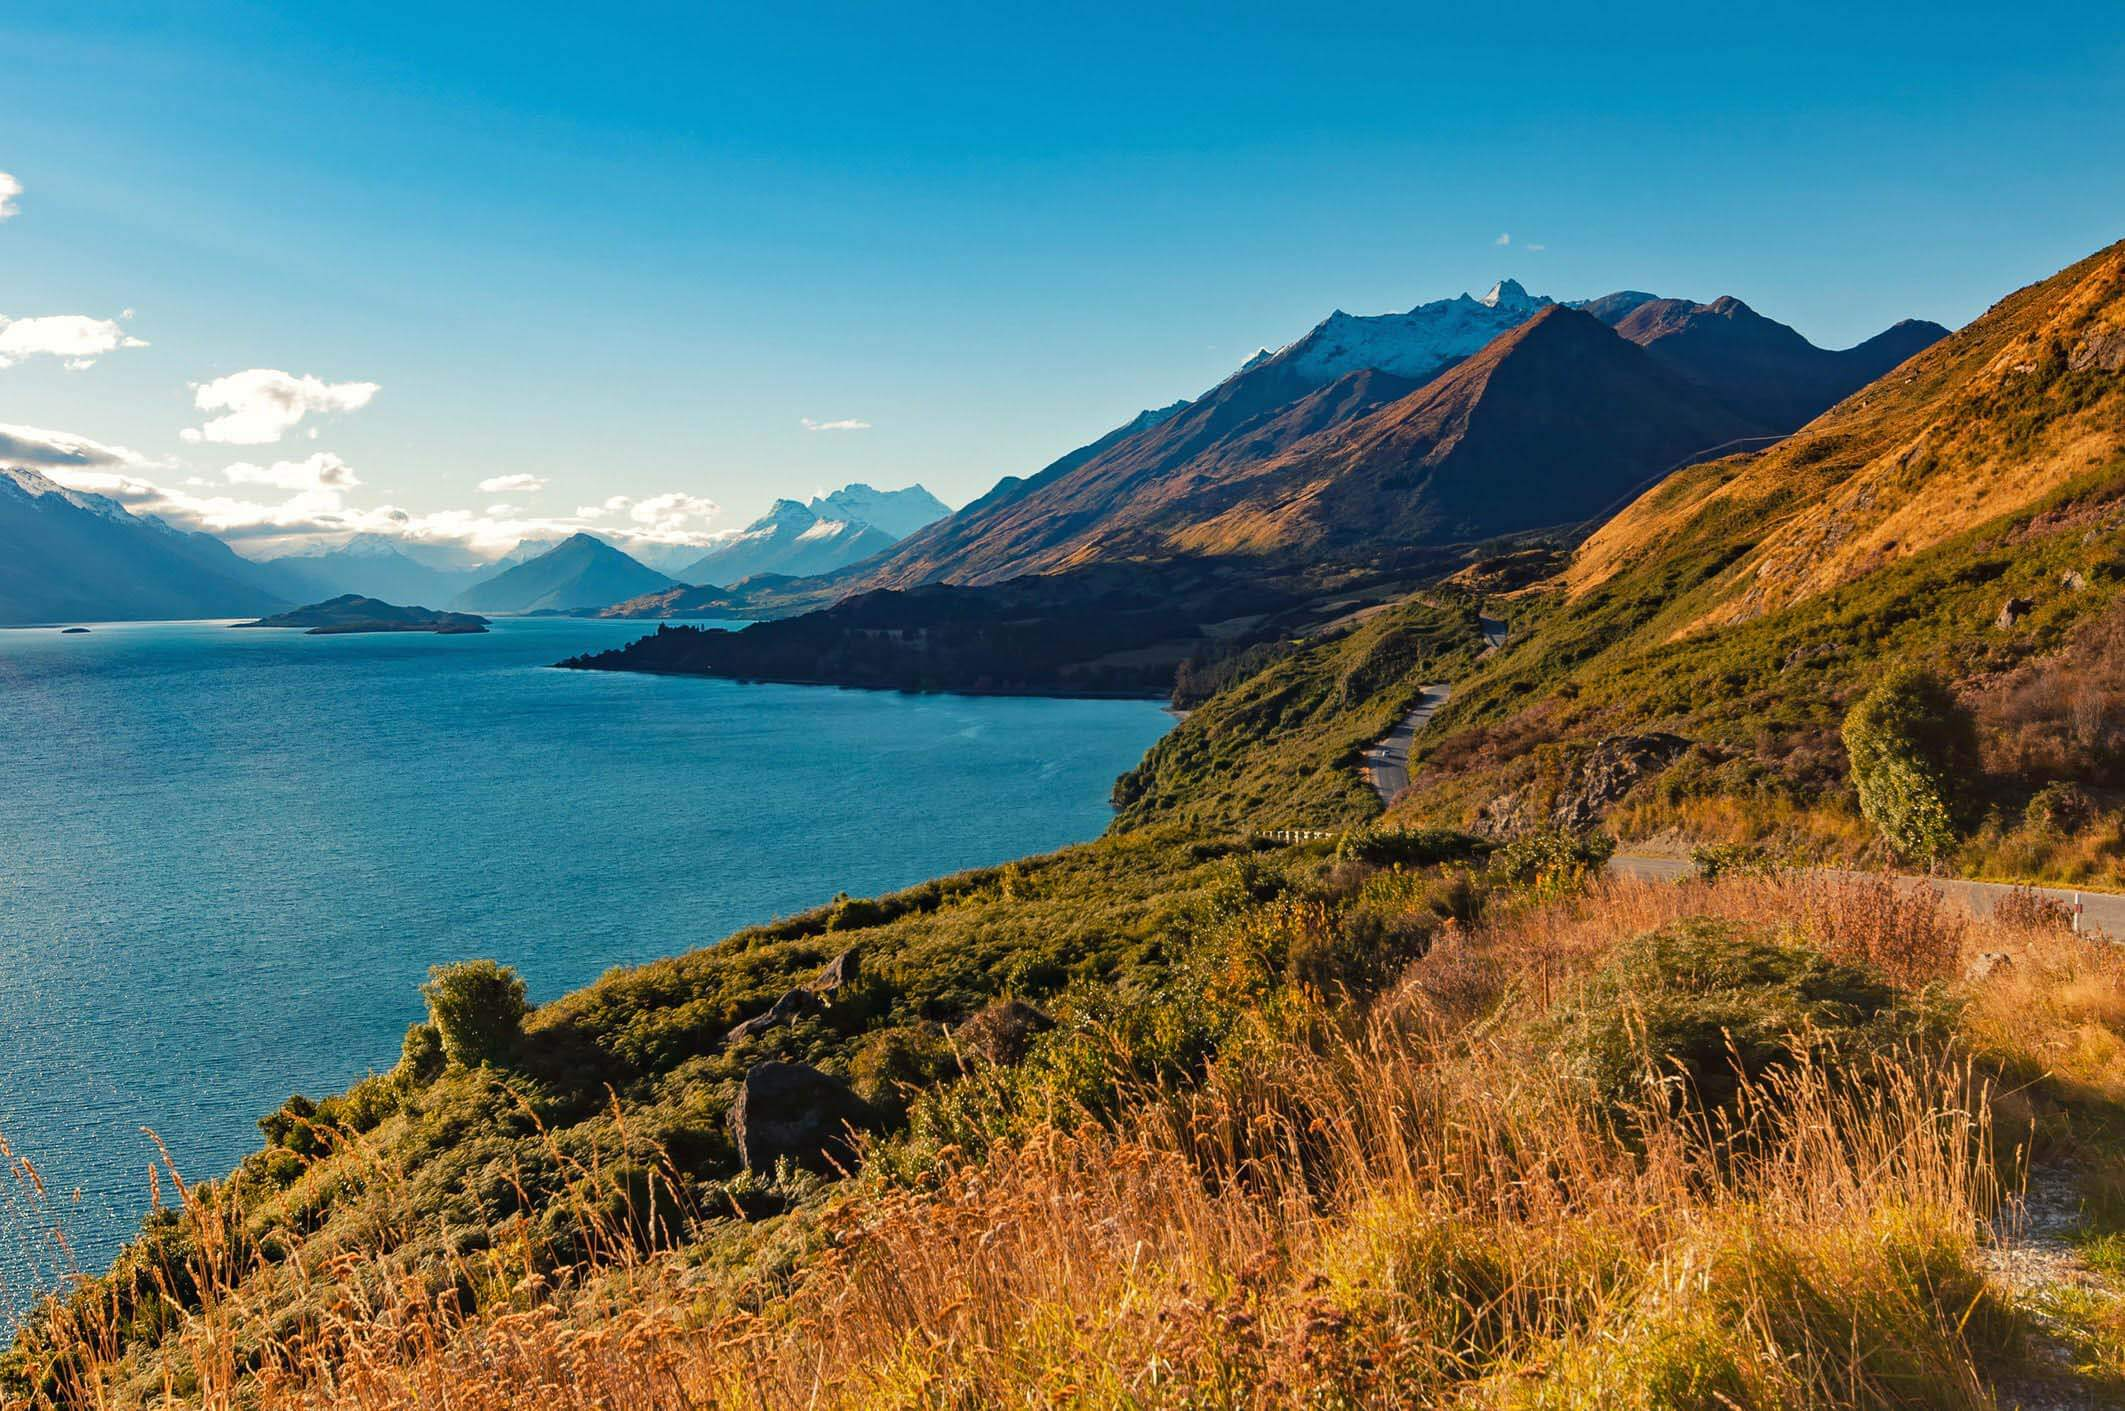 Views of mountains and a lake from Bennetts Bluff Lookout at the Glenorchy to Queenstown Road